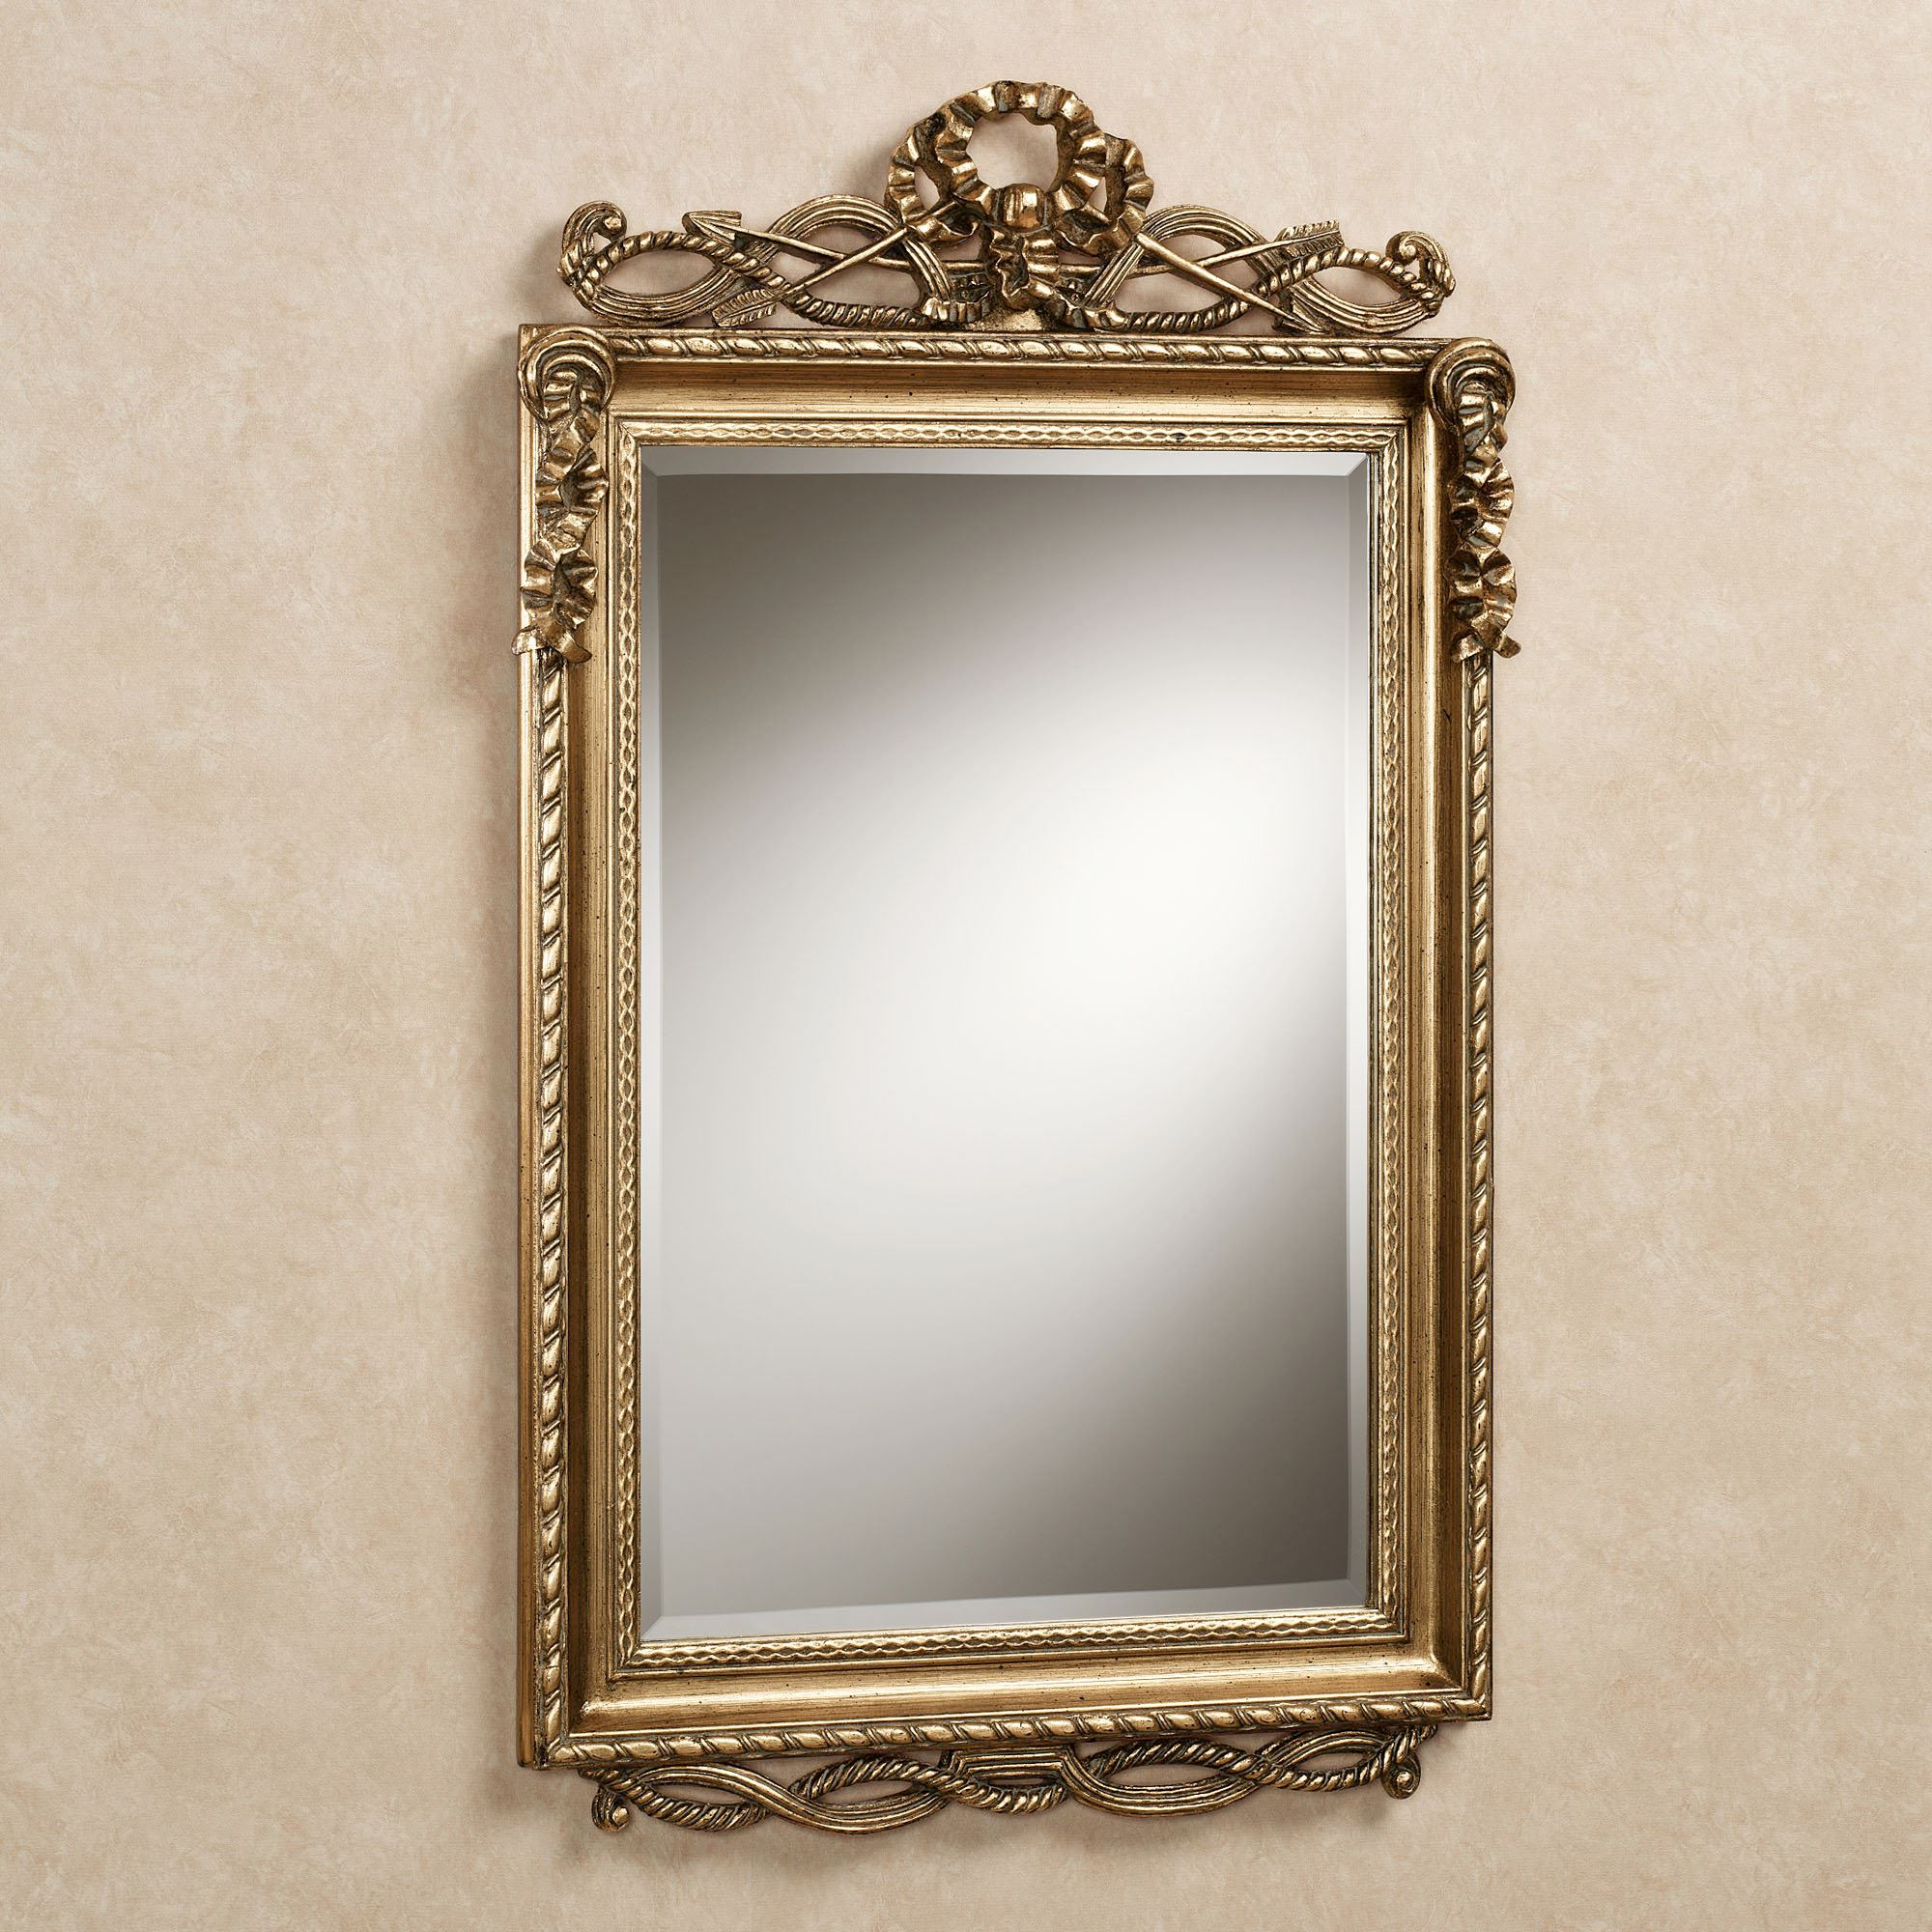 Widely Used Wall Mirrors Designs Pertaining To Lancaster Twist Design Rectangular Wall Mirror (View 10 of 20)